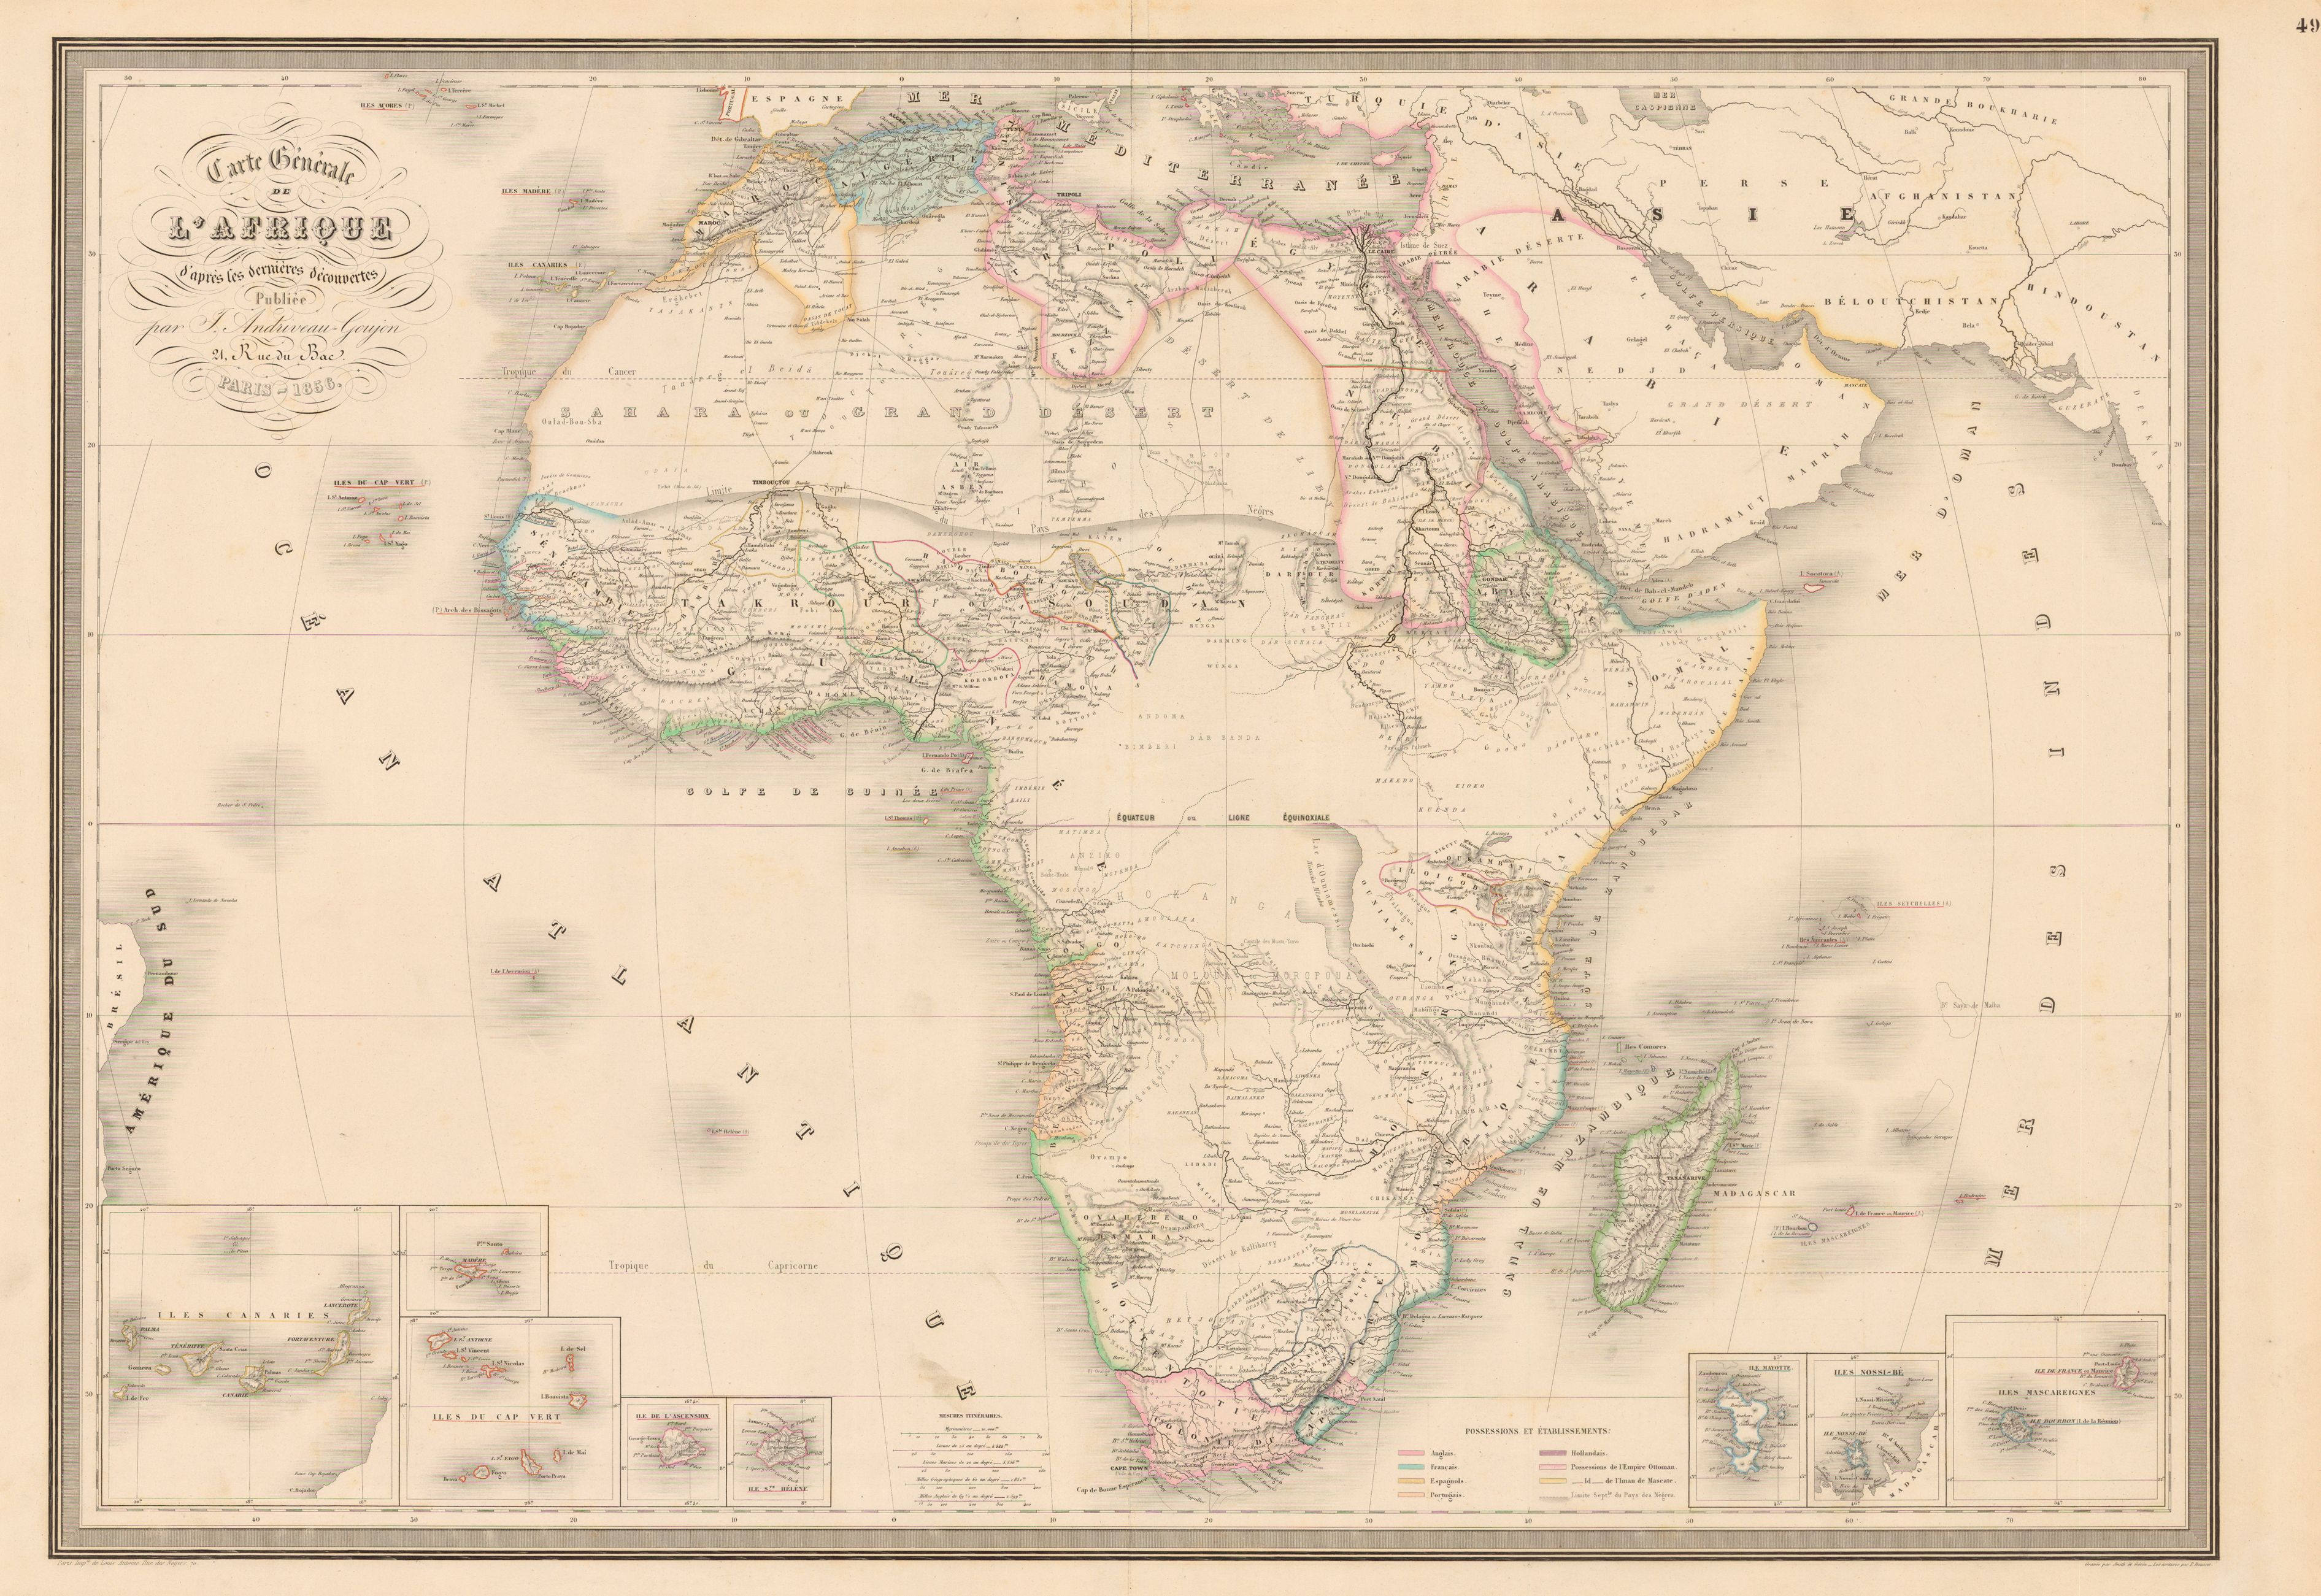 1856 andriveaug 37832602 parched pinterest geography this is interesting in contrast to the next map the quarter century gap covering a period of intense african exploration gumiabroncs Choice Image